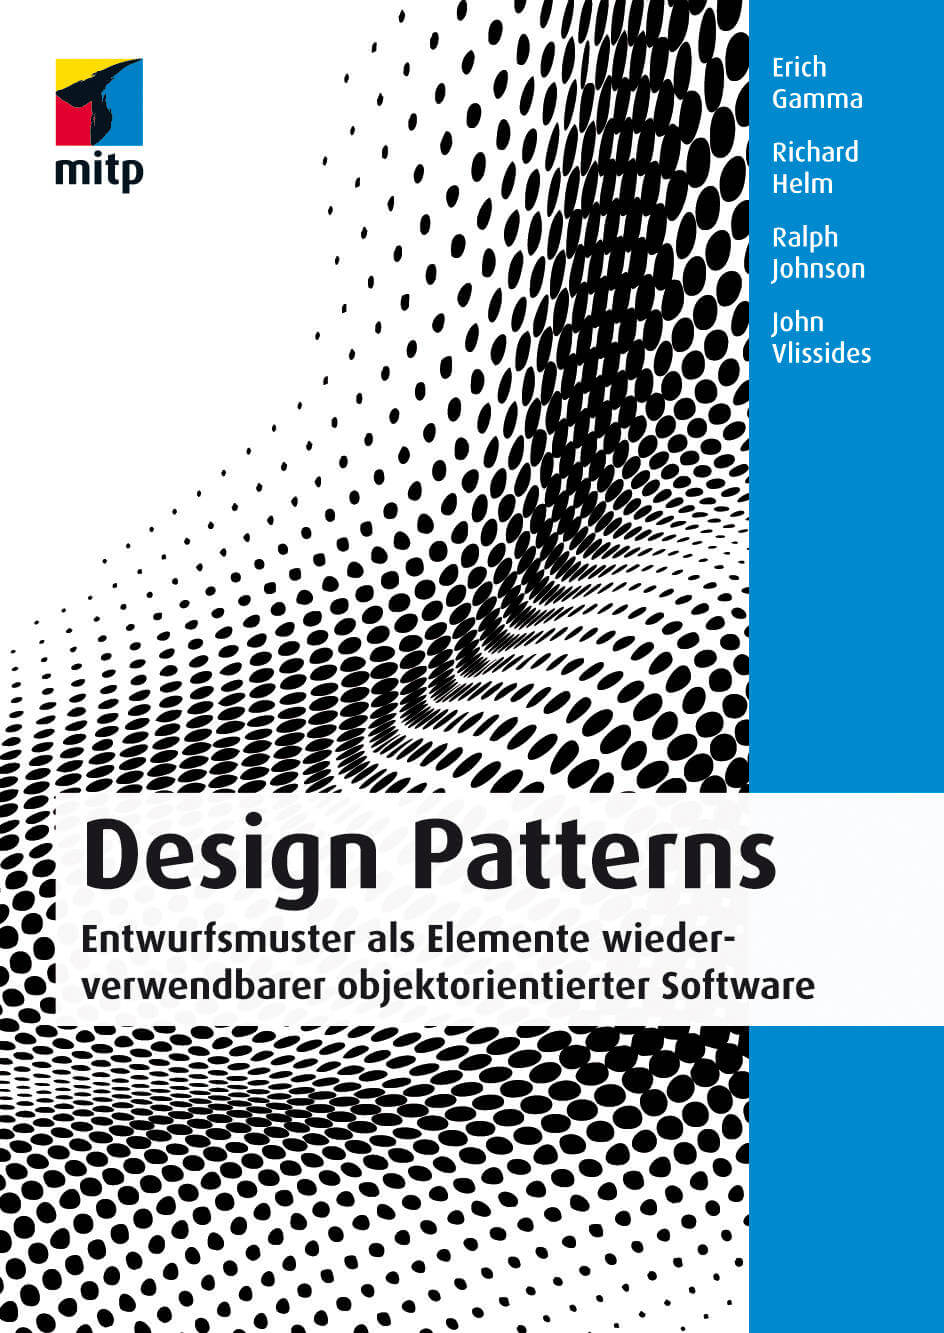 Design Patterns - Developer-Blog